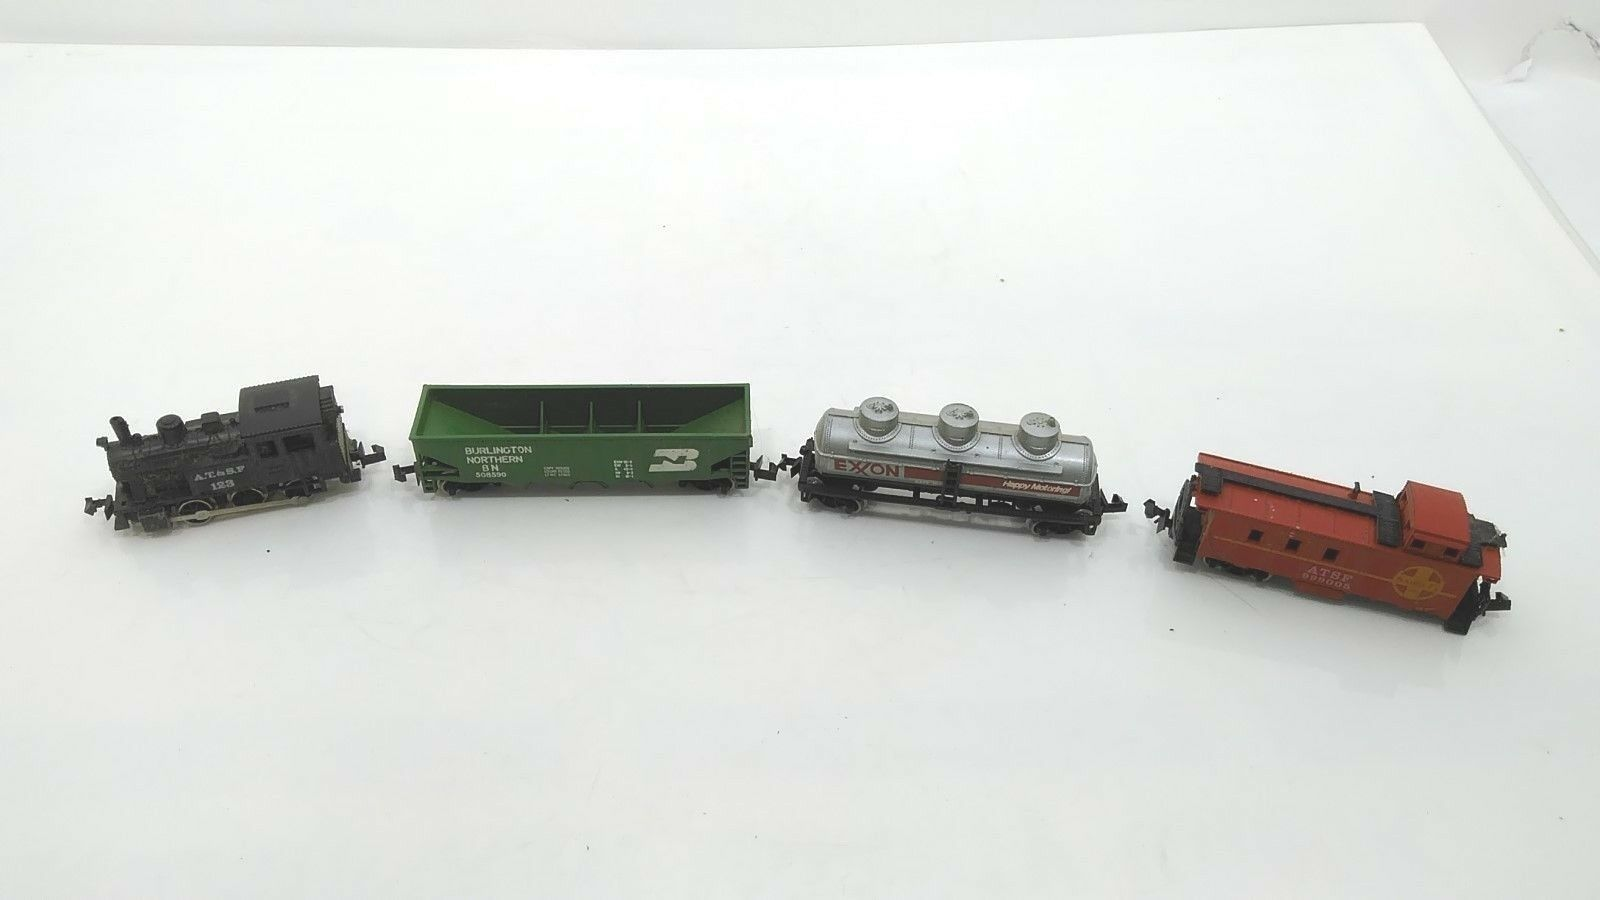 AT&SF 123 N Gauge Scale Switcher Exxon, Santa Fe 999005 Burlington 508590 Parts